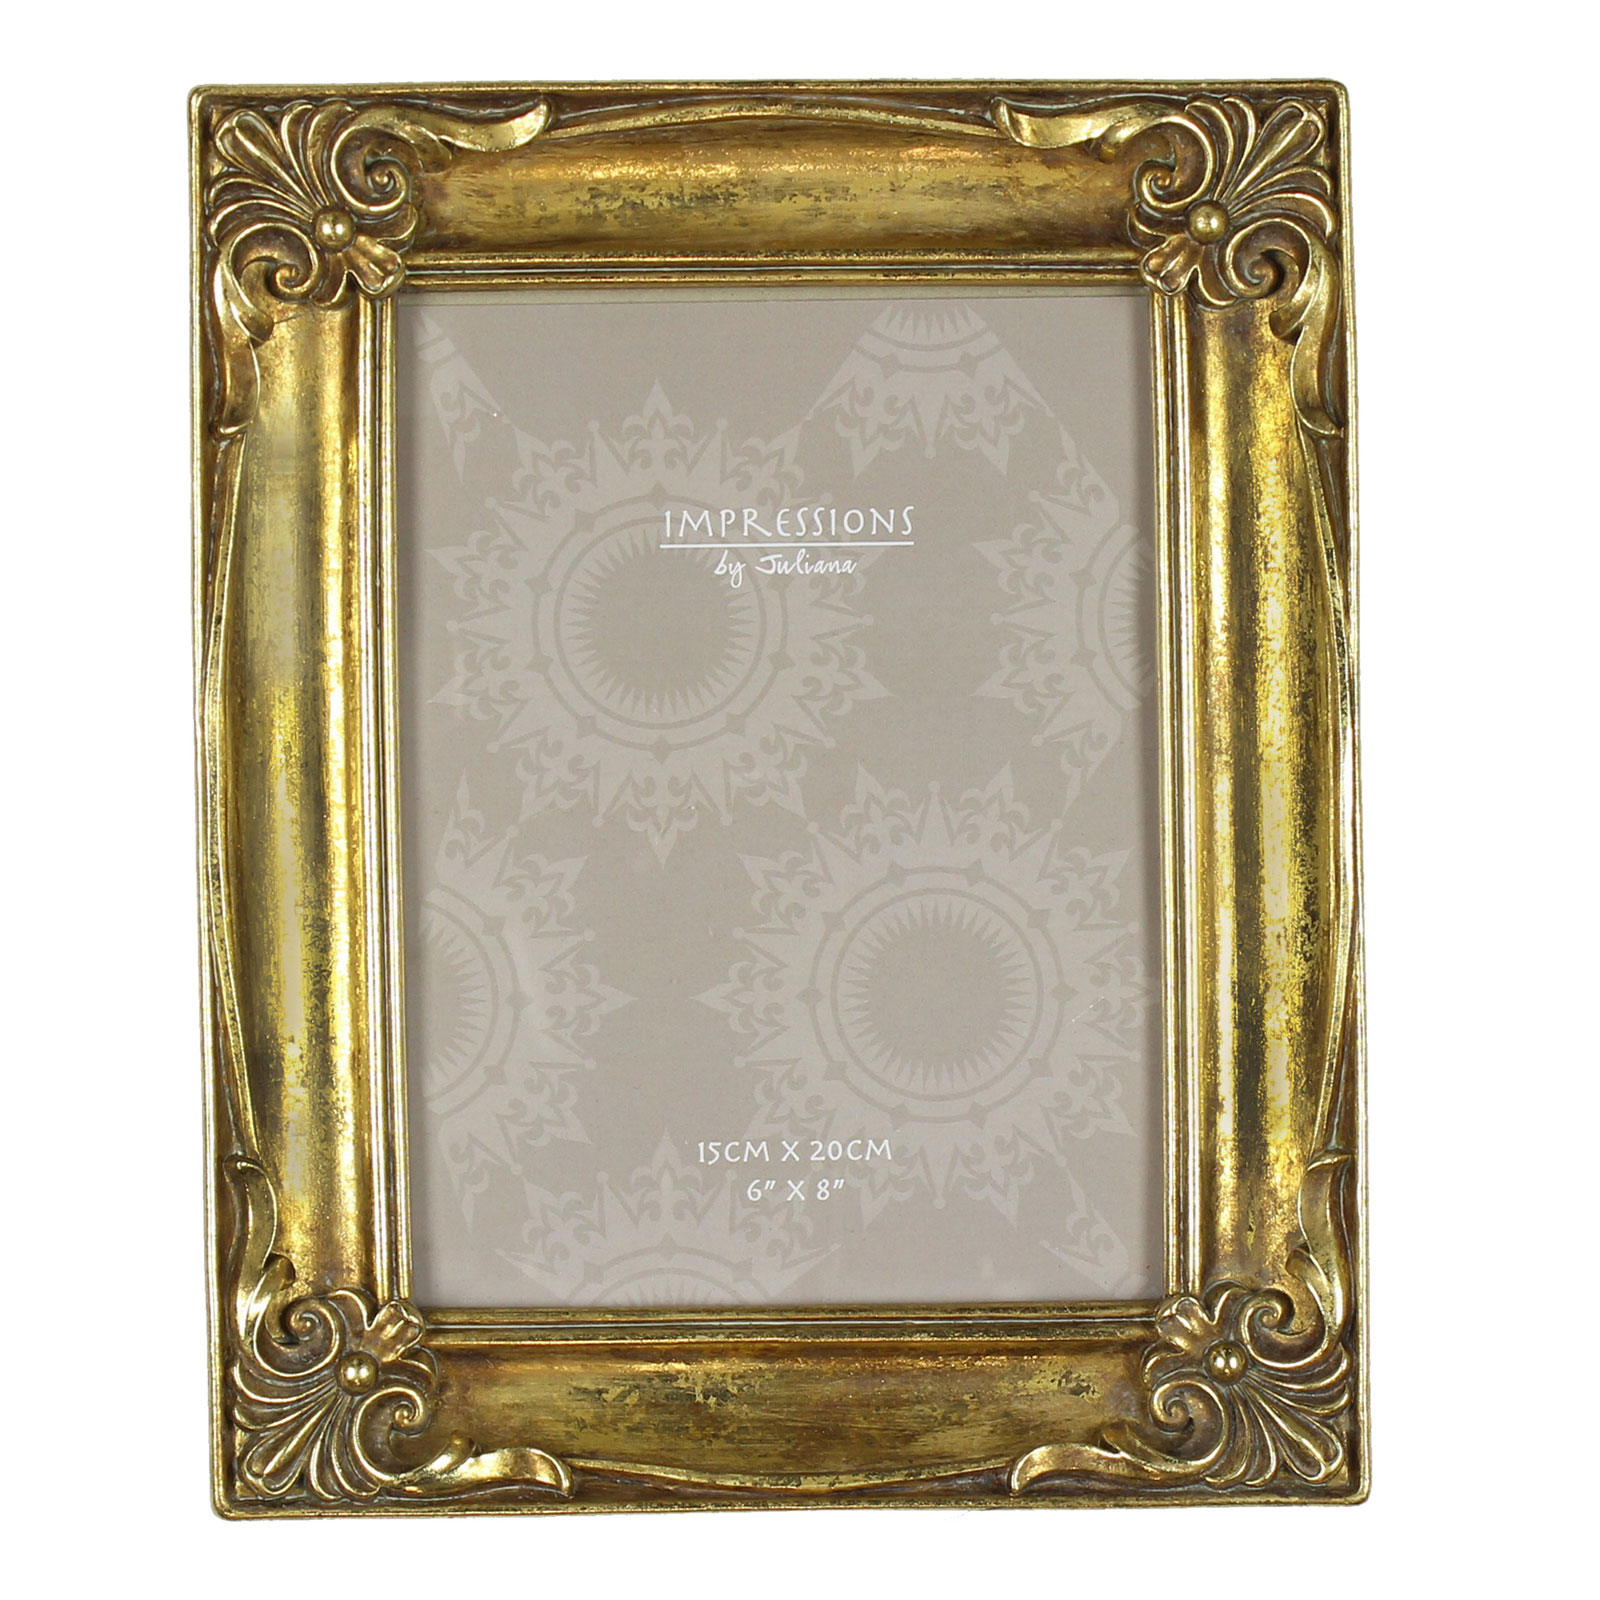 ornate antique vintage art deco style photo frame picture distressed shabby chic ebay. Black Bedroom Furniture Sets. Home Design Ideas